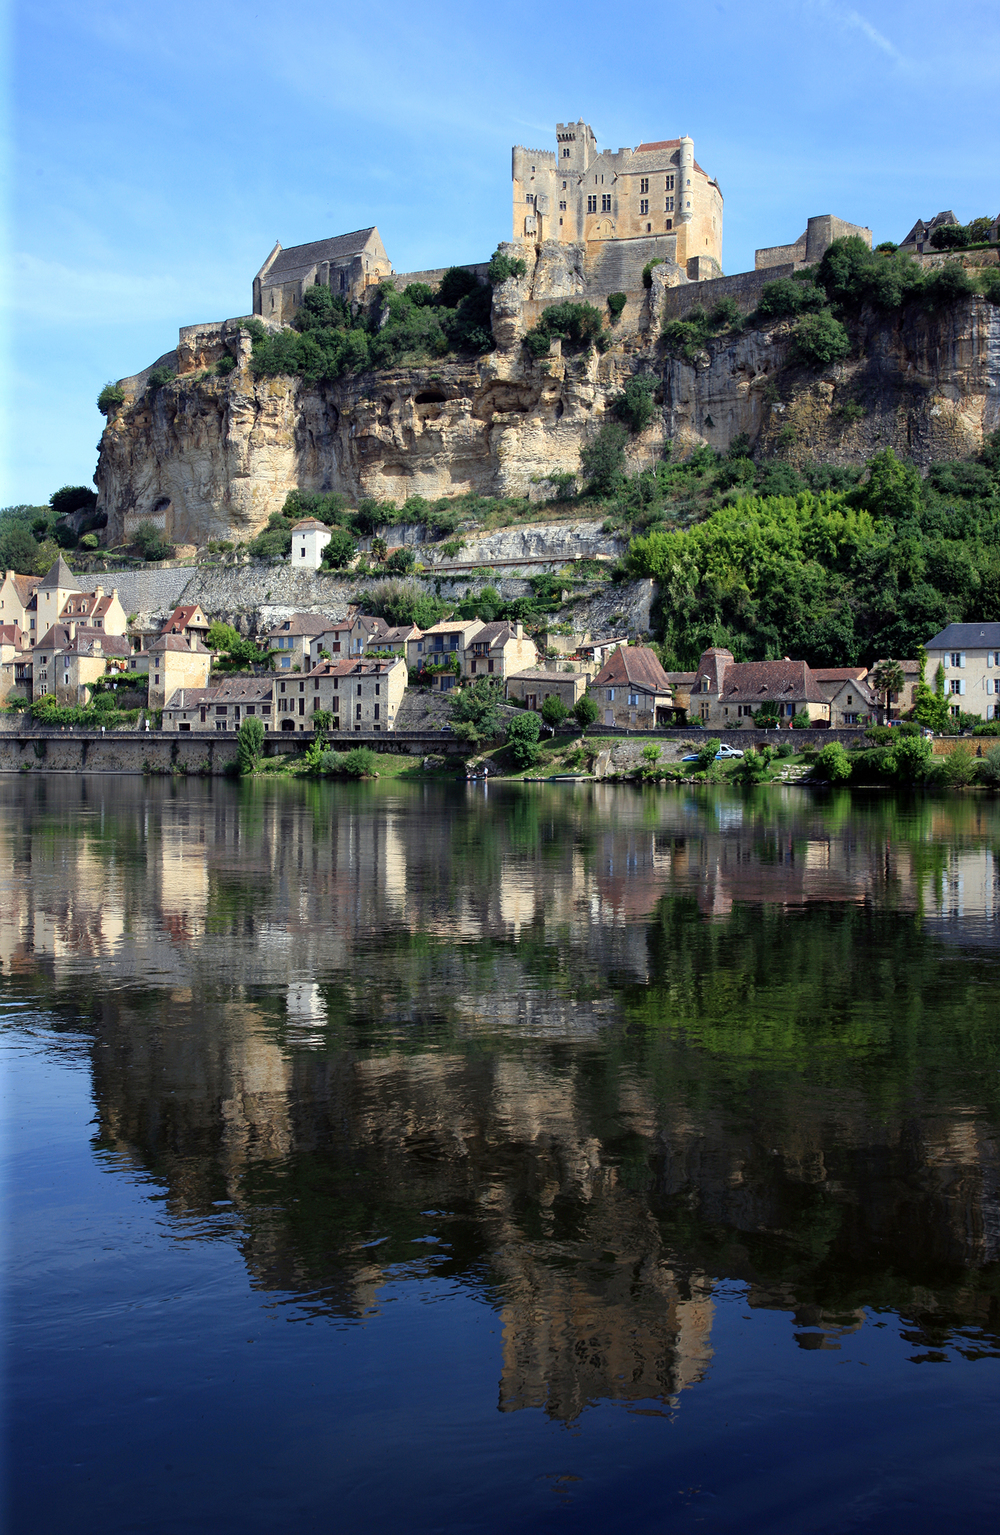 The Castle in Beynac